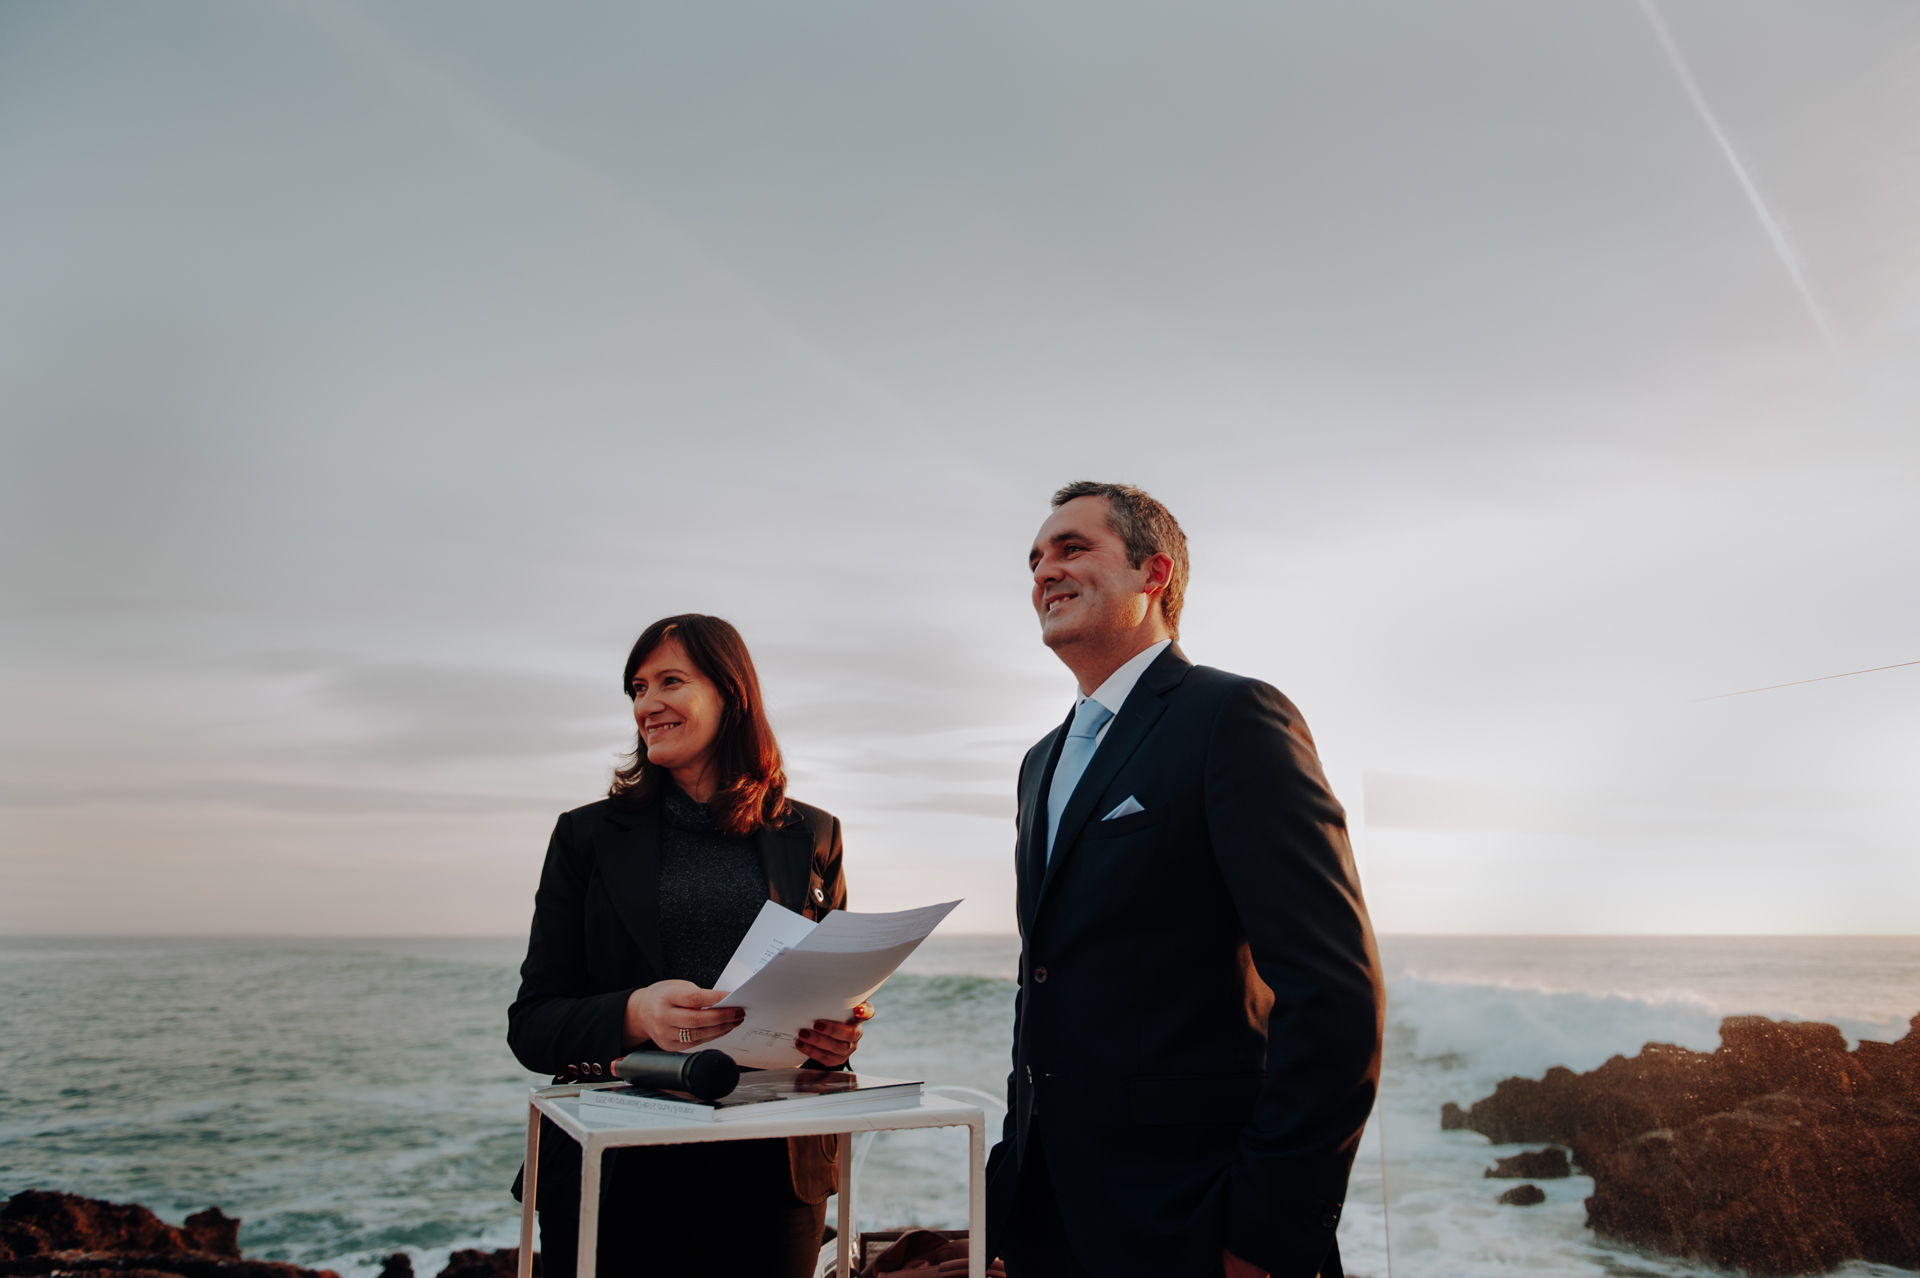 Farol Hotel - Cascais, Portugal - Design Hotels Wedding Pics | The groom smiles with pride at the beach ceremony